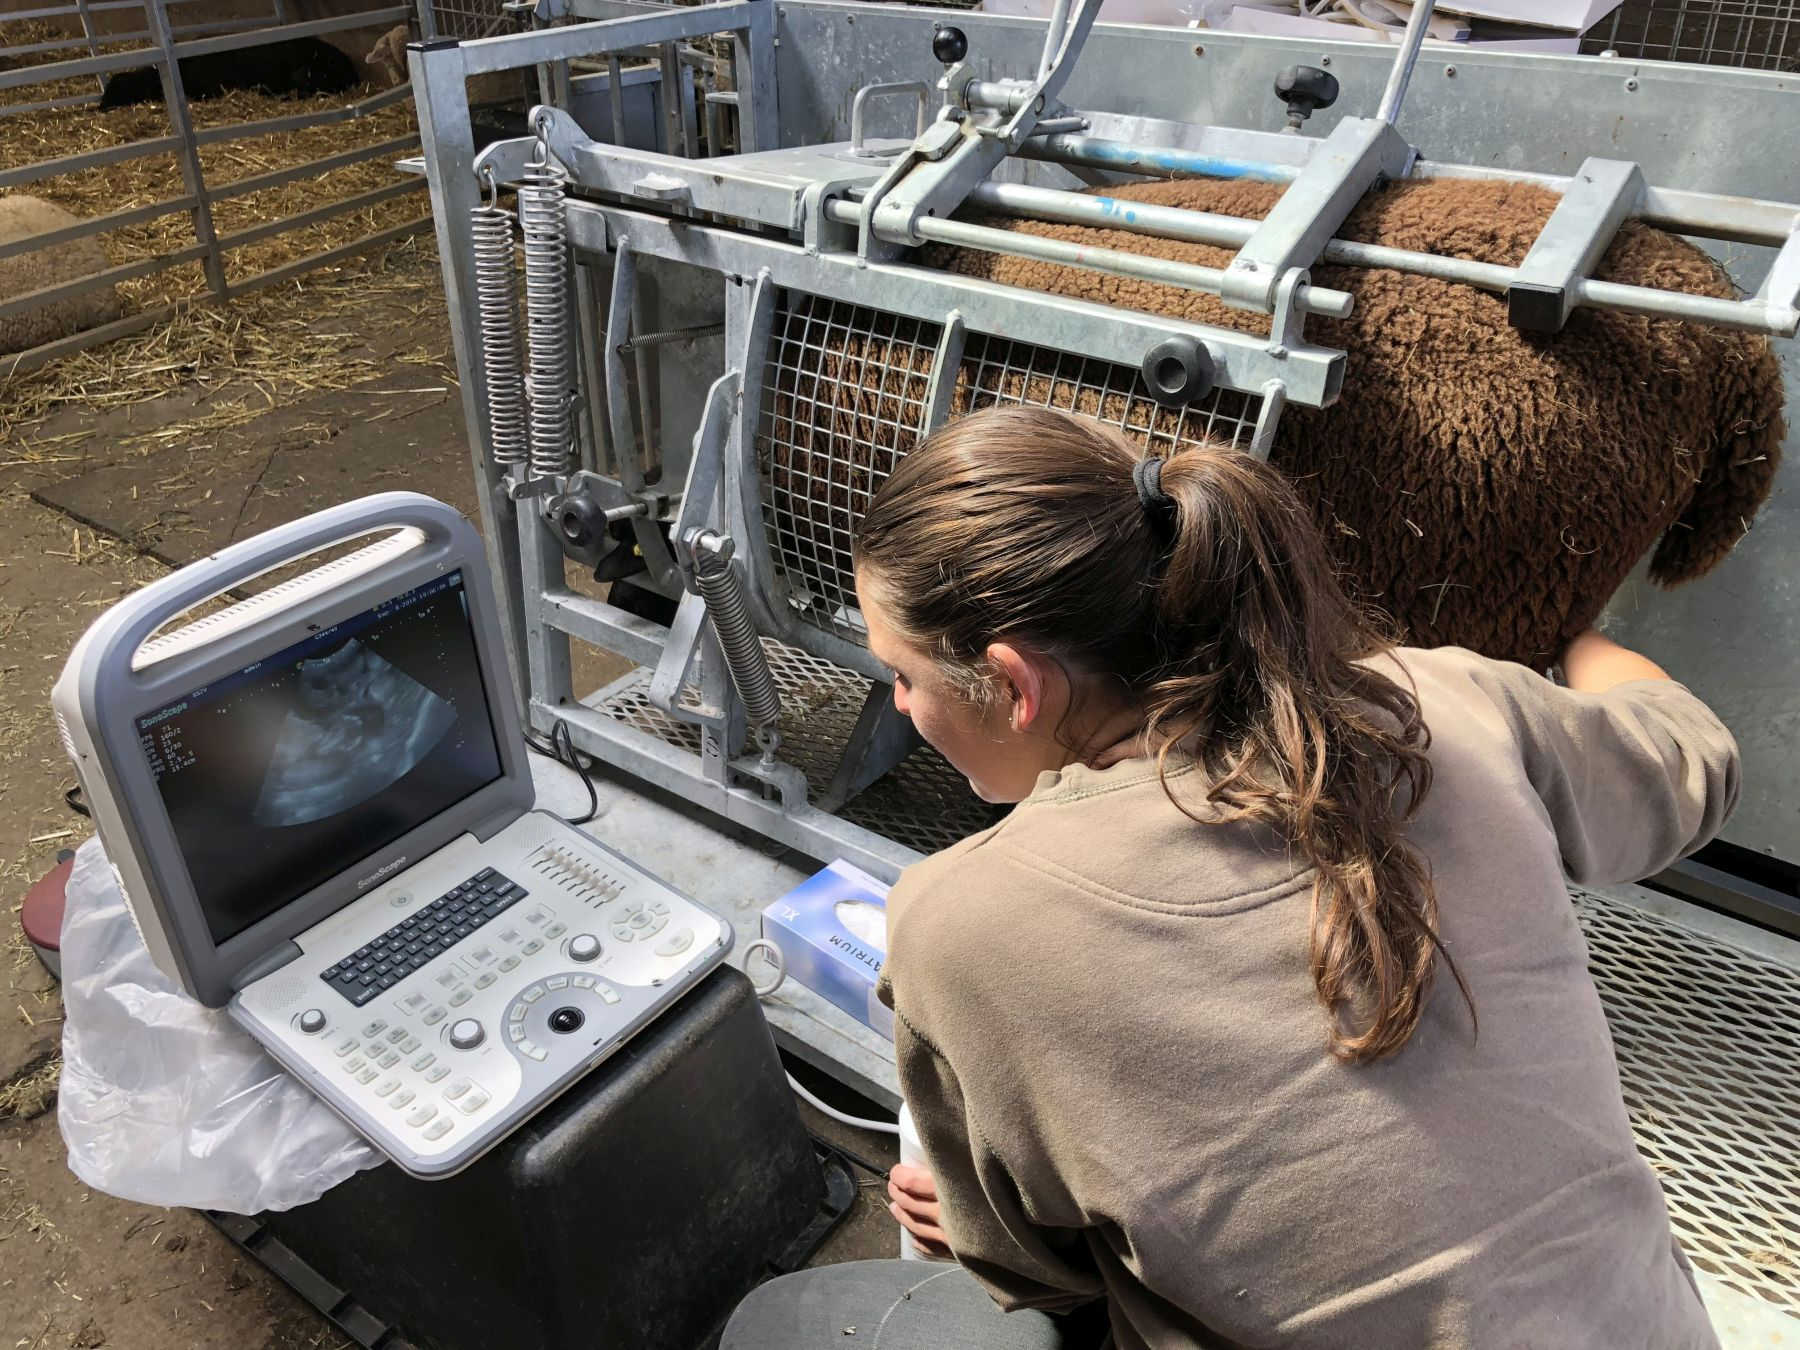 Alison scanning sheep